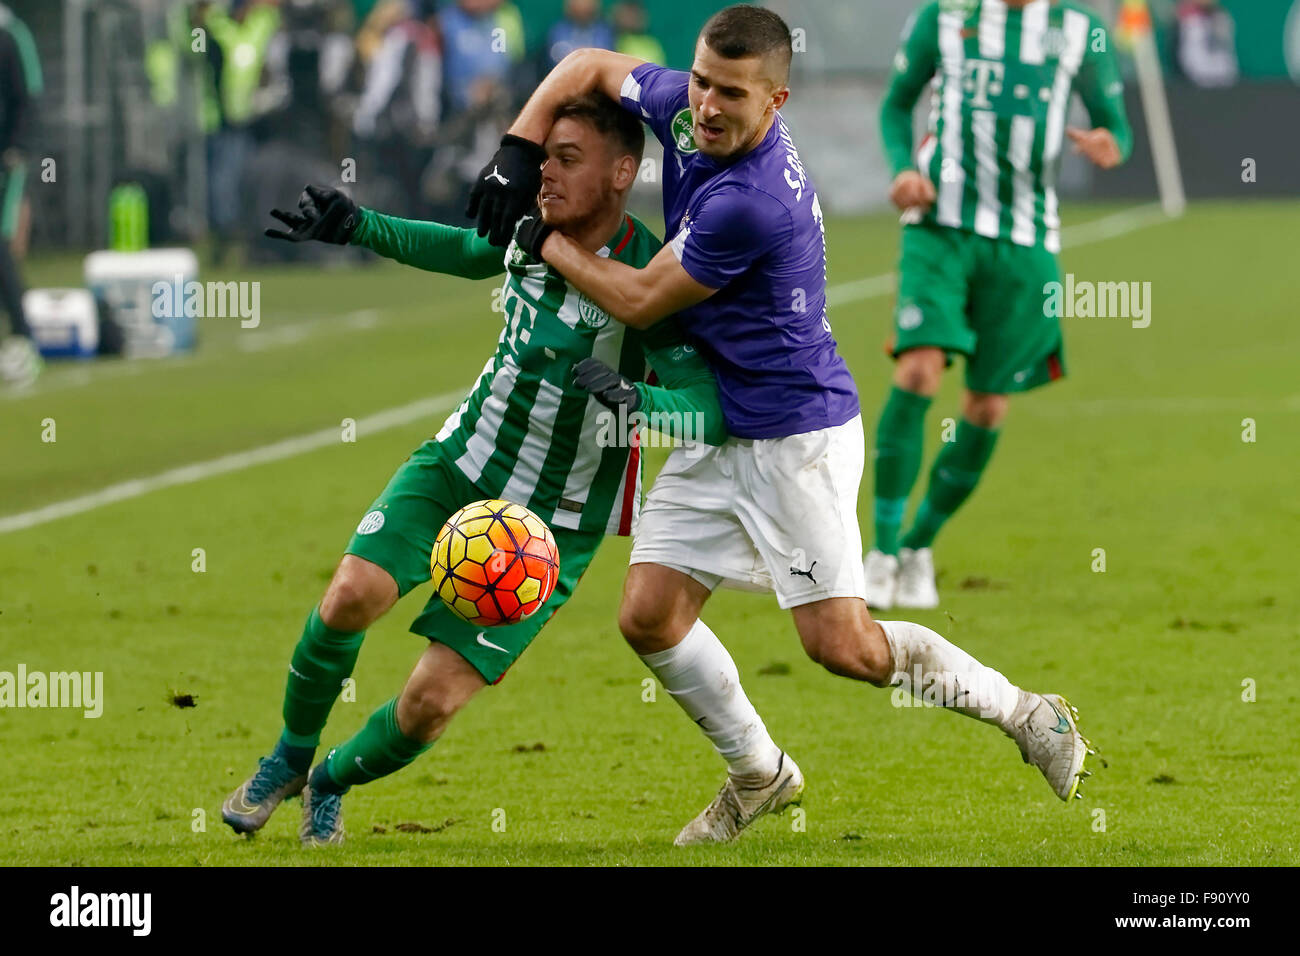 Budapest, Hungary. 12th December, 2015. Andras Rado of Ferencvaros (l) is fouled by Bojan Sankovic of Ujpest during - Stock Image